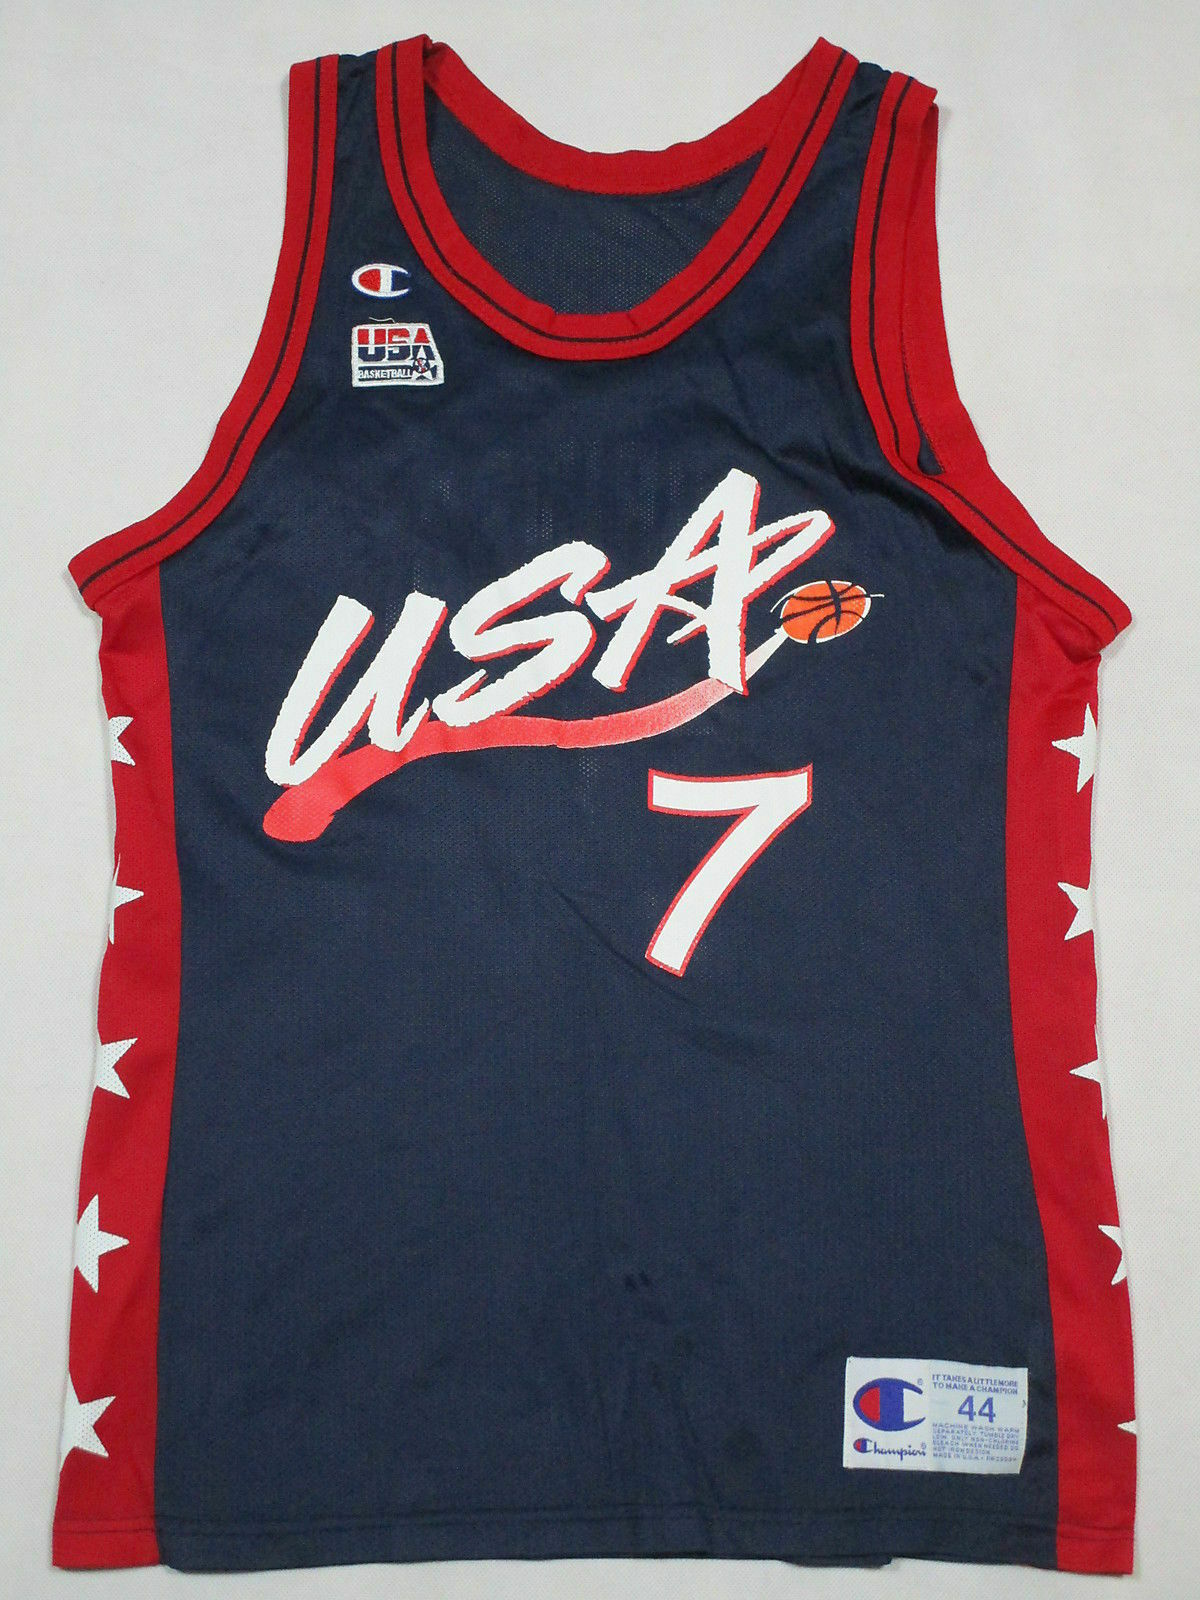 Champion Camiseta Jersey Olympia USA Basketball Trikot L 44